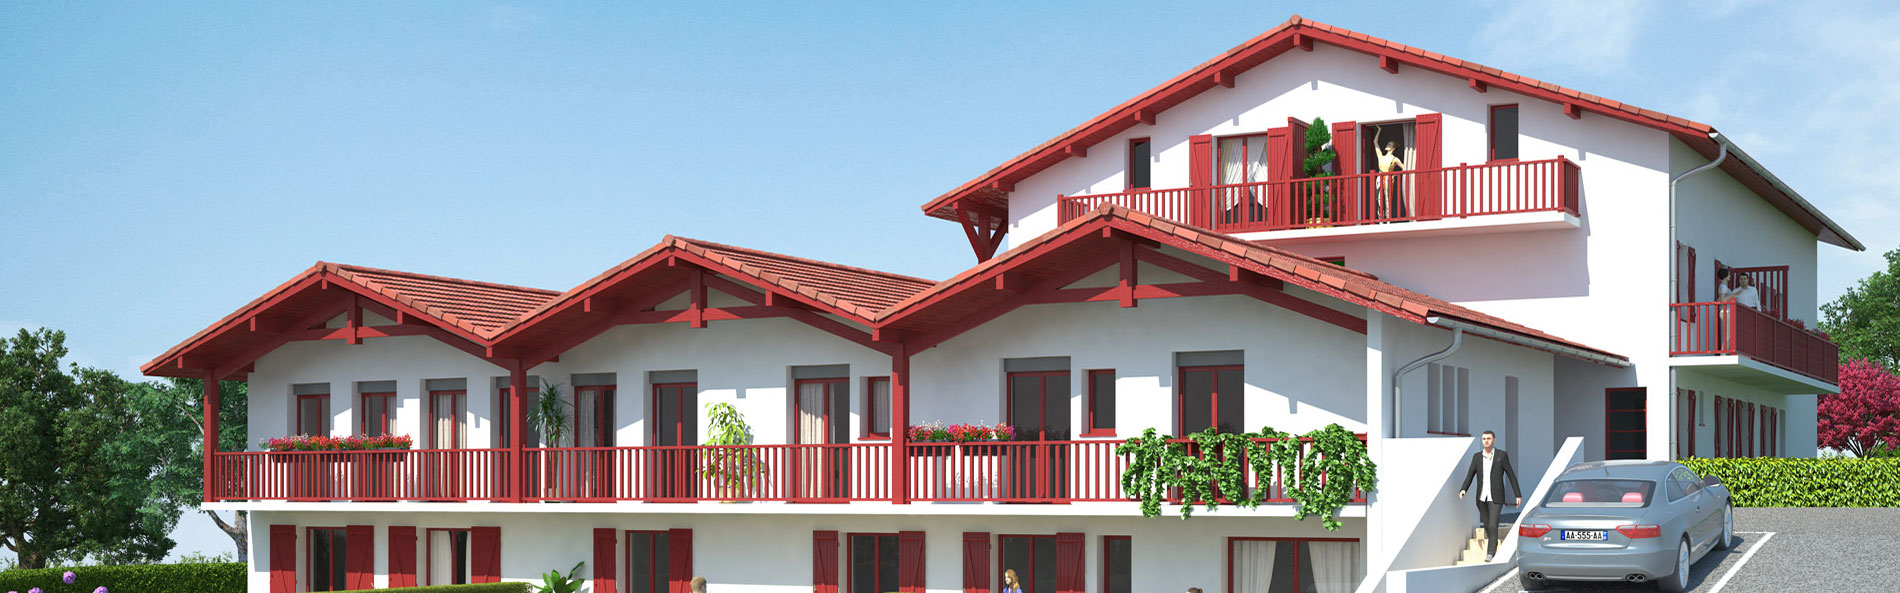 promotion immobiliere pays basque